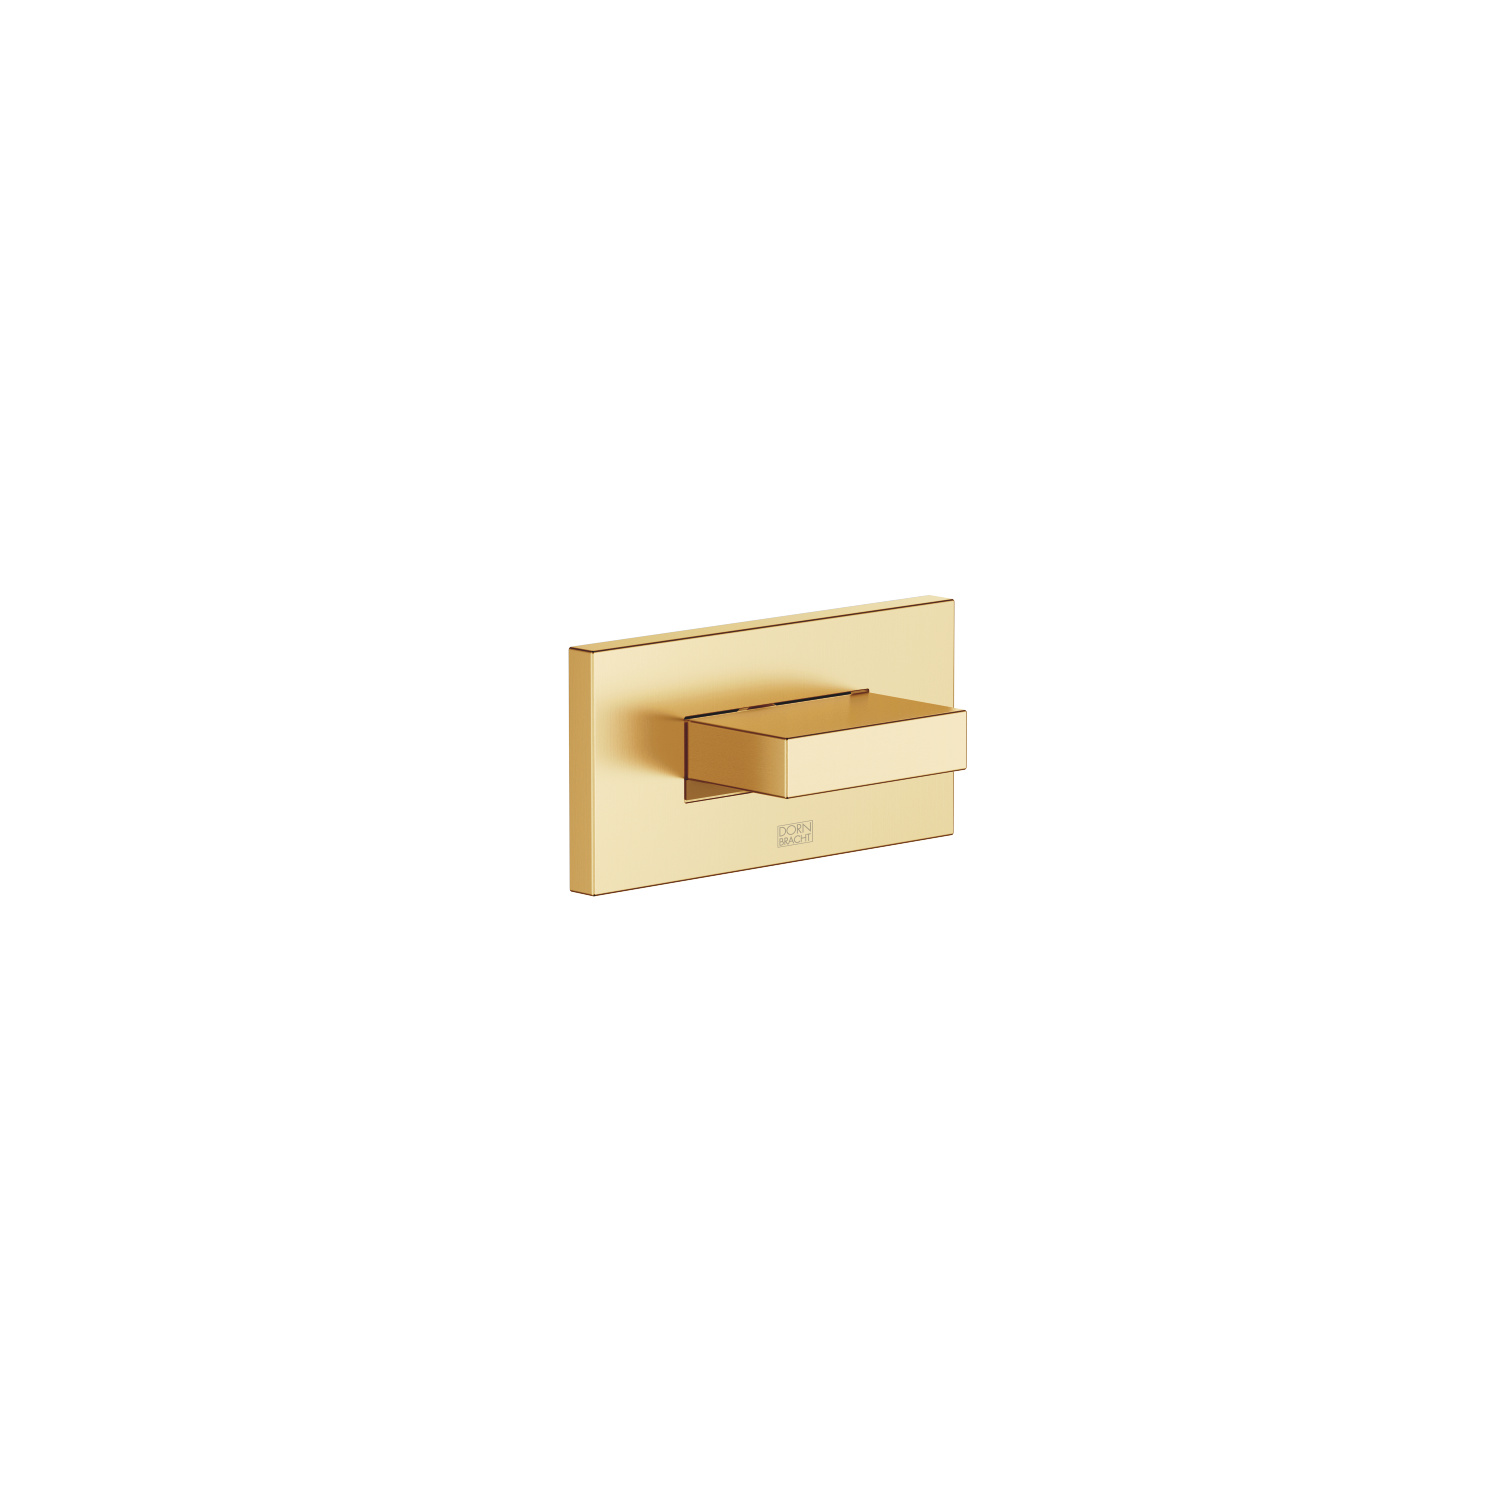 WATER CURVE Concealed body spray - brushed Durabrass